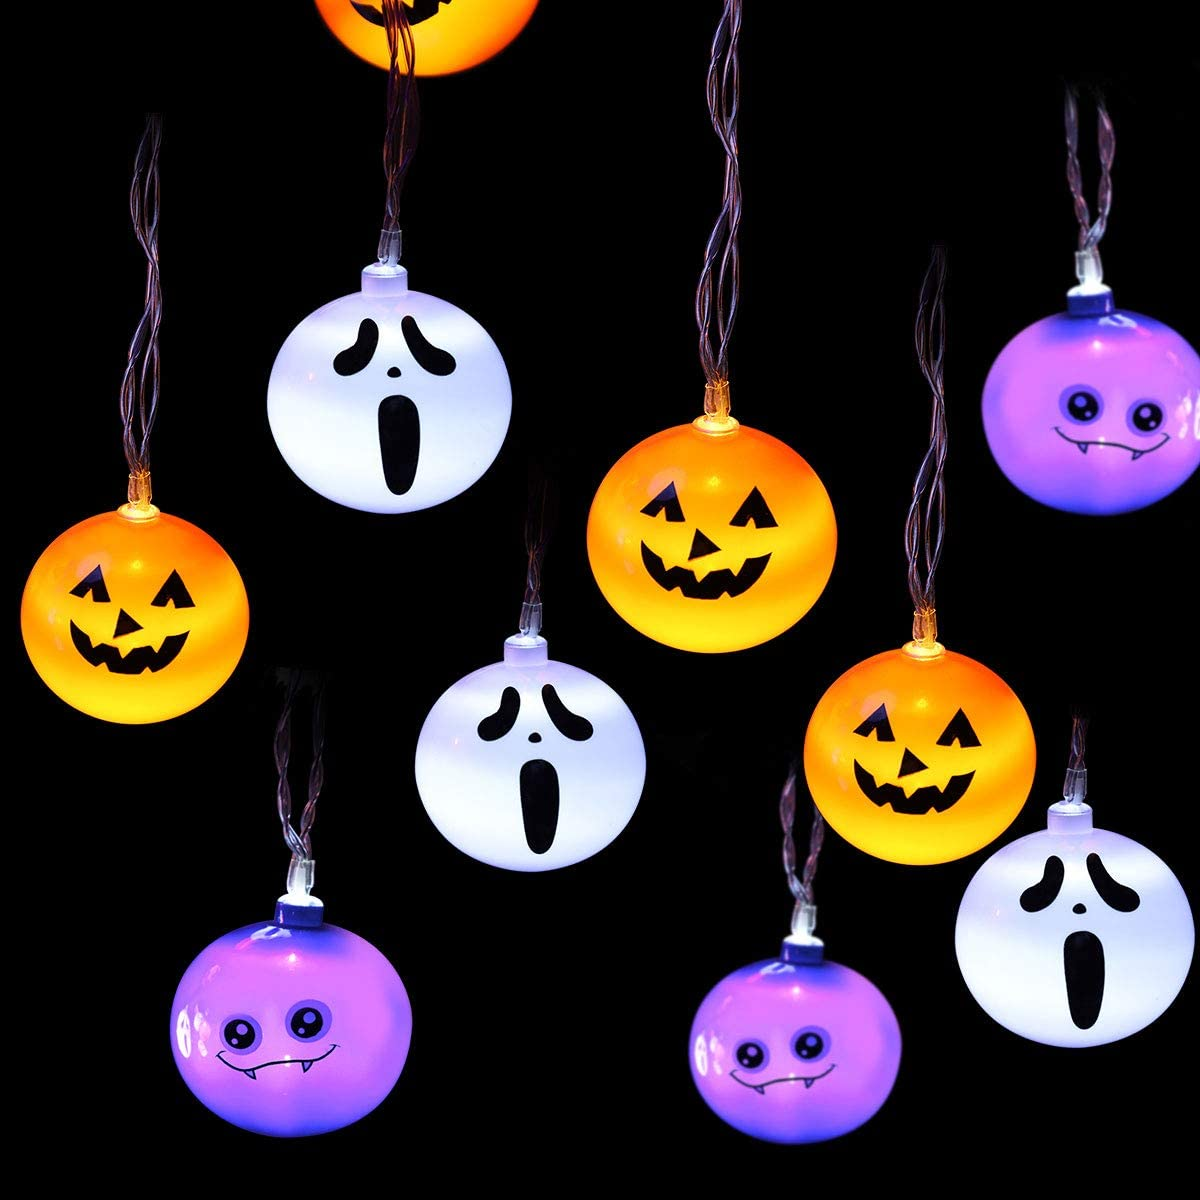 MAOYUE Halloween Lights Outdoor 9.84ft 21 LED Halloween String Lights Pumpkin Ghost Bat Halloween Lights Battery Powered Waterproof Halloween Lights 8 Modes for Halloween Decorations Outdoor, Indoor